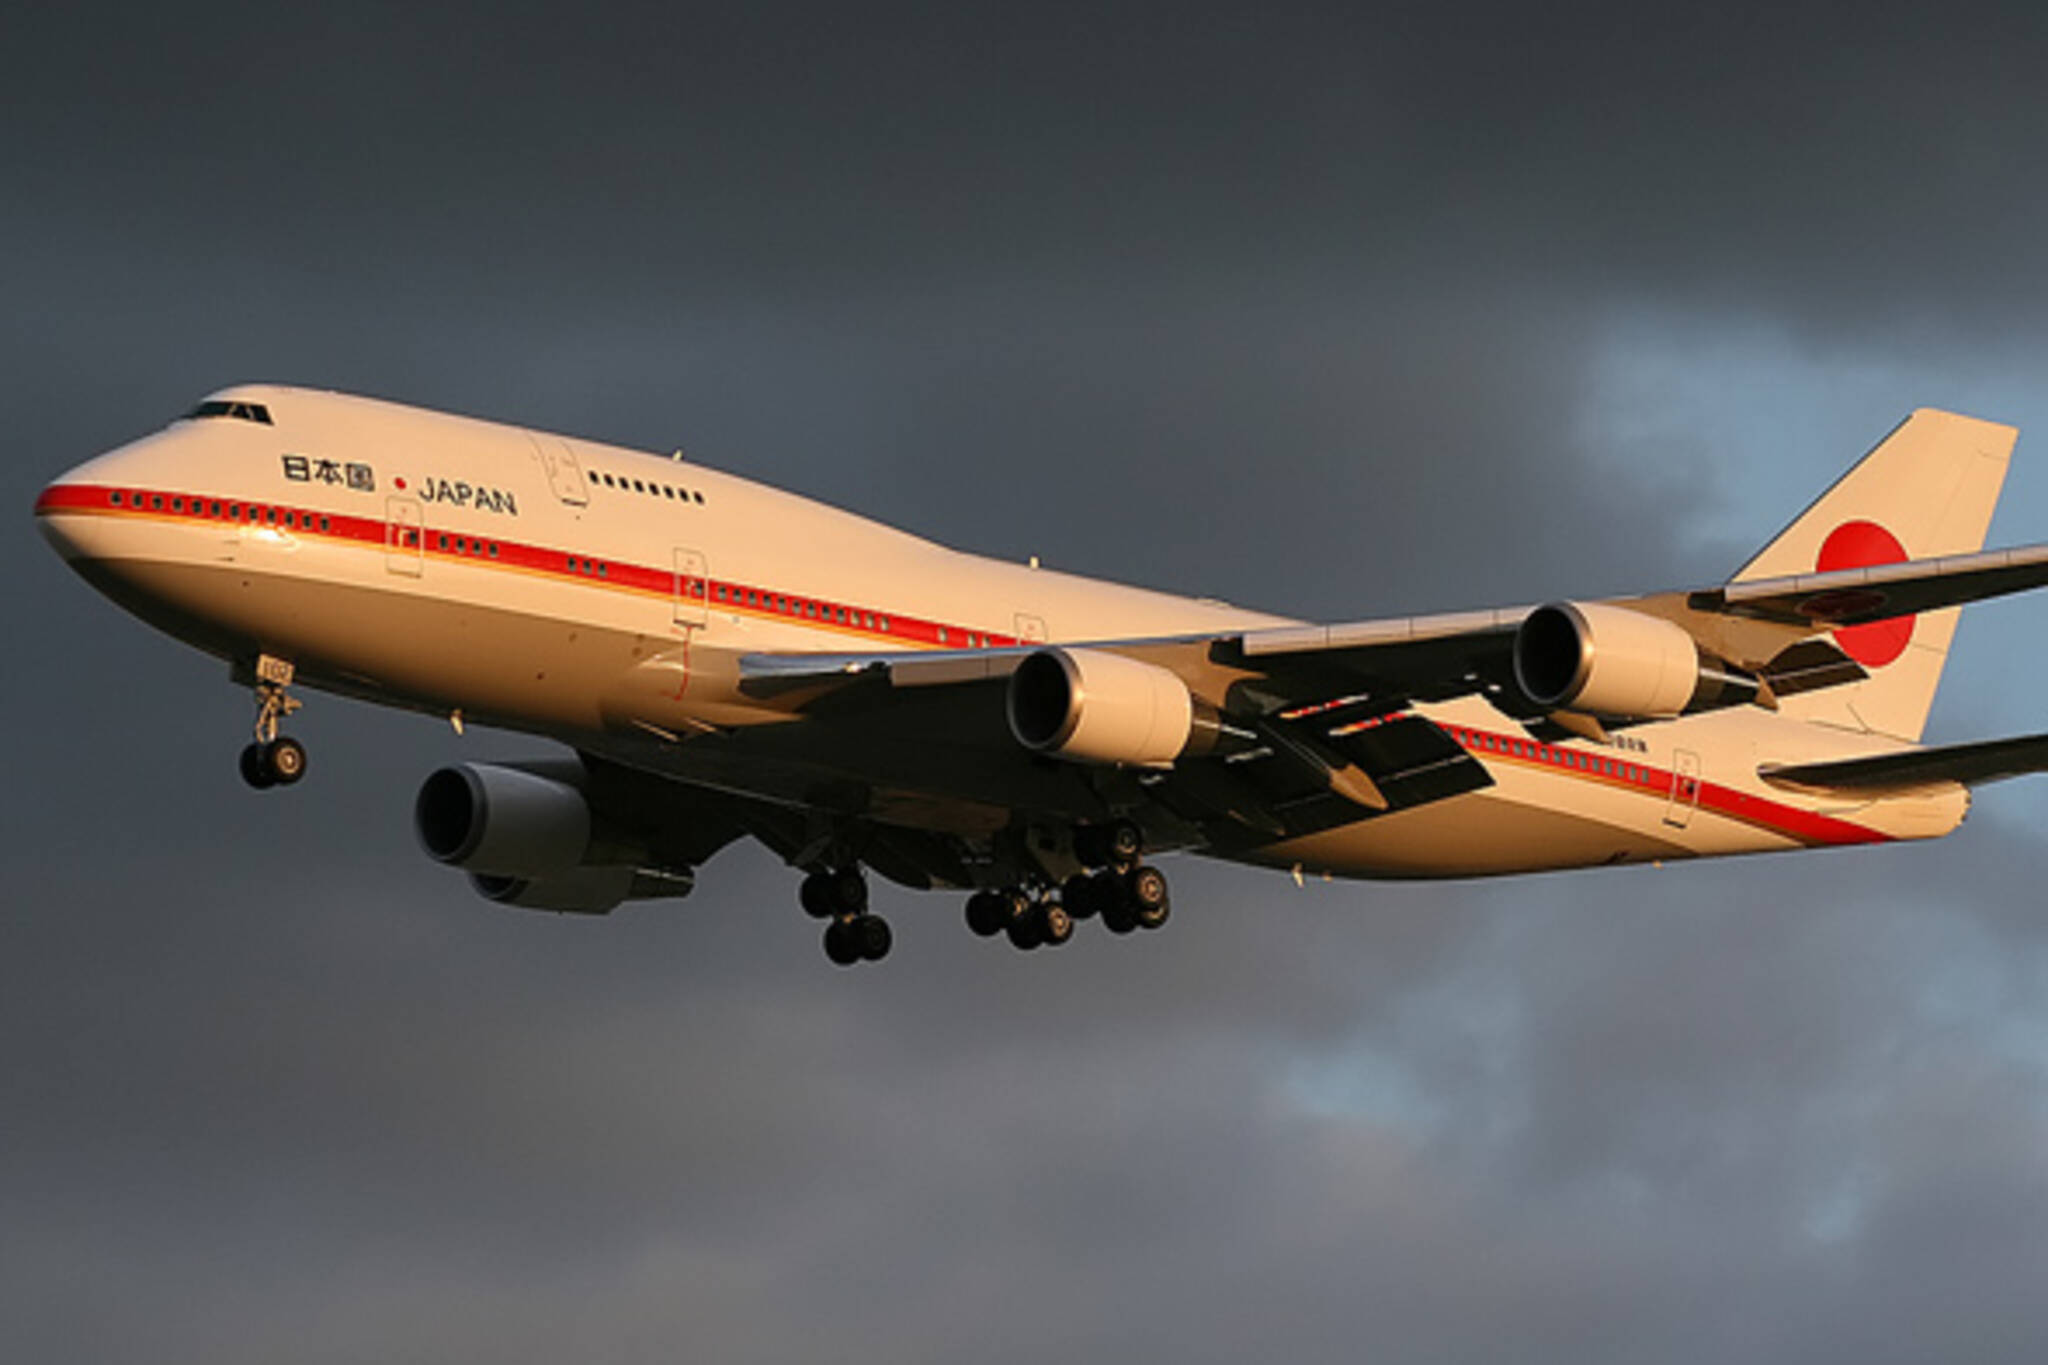 Japanese Air Force One